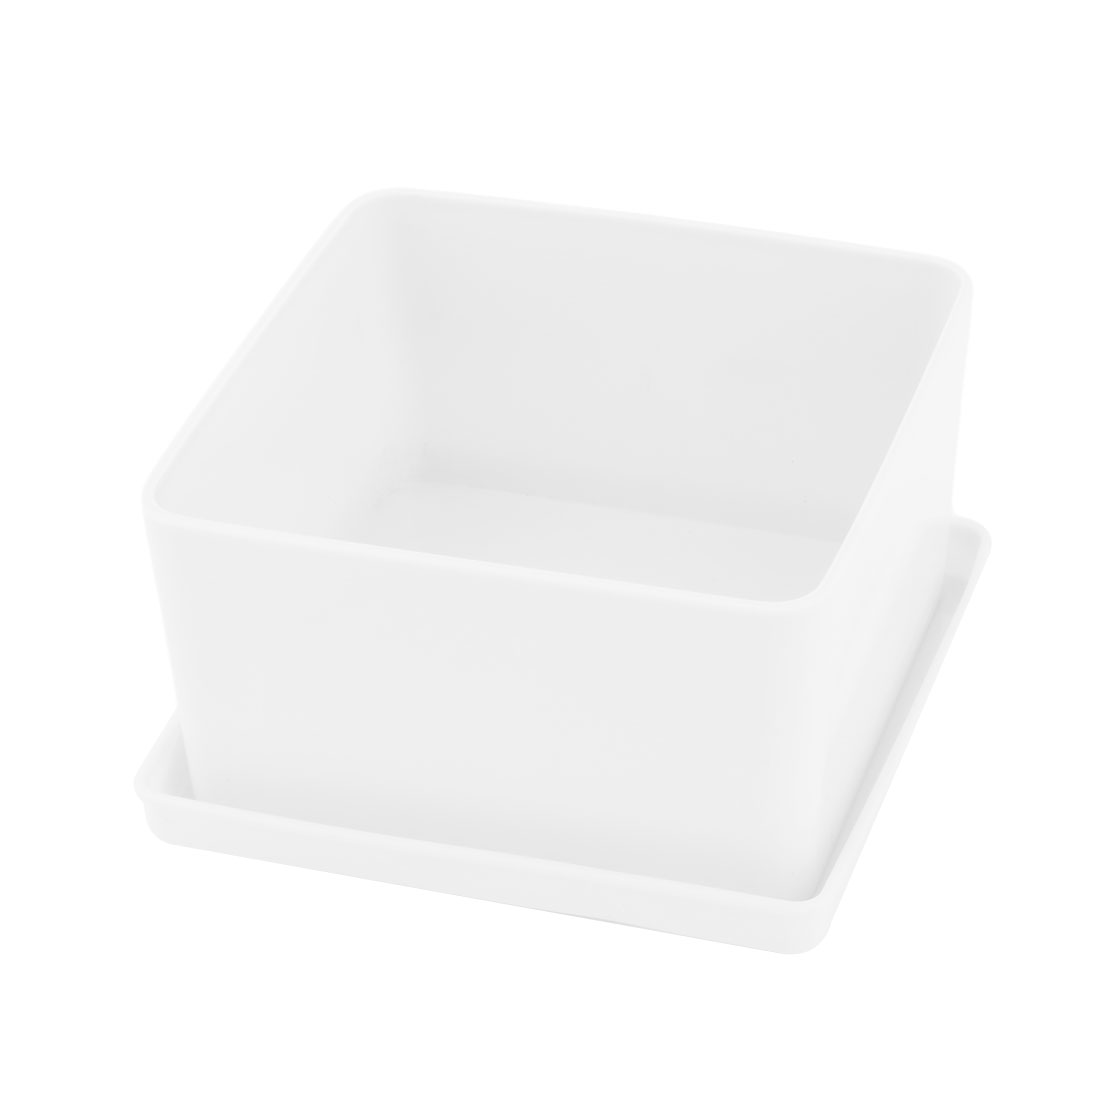 Home Desktop Ornament Plastic Flower Grass Plant Pot Tray Holder Container White